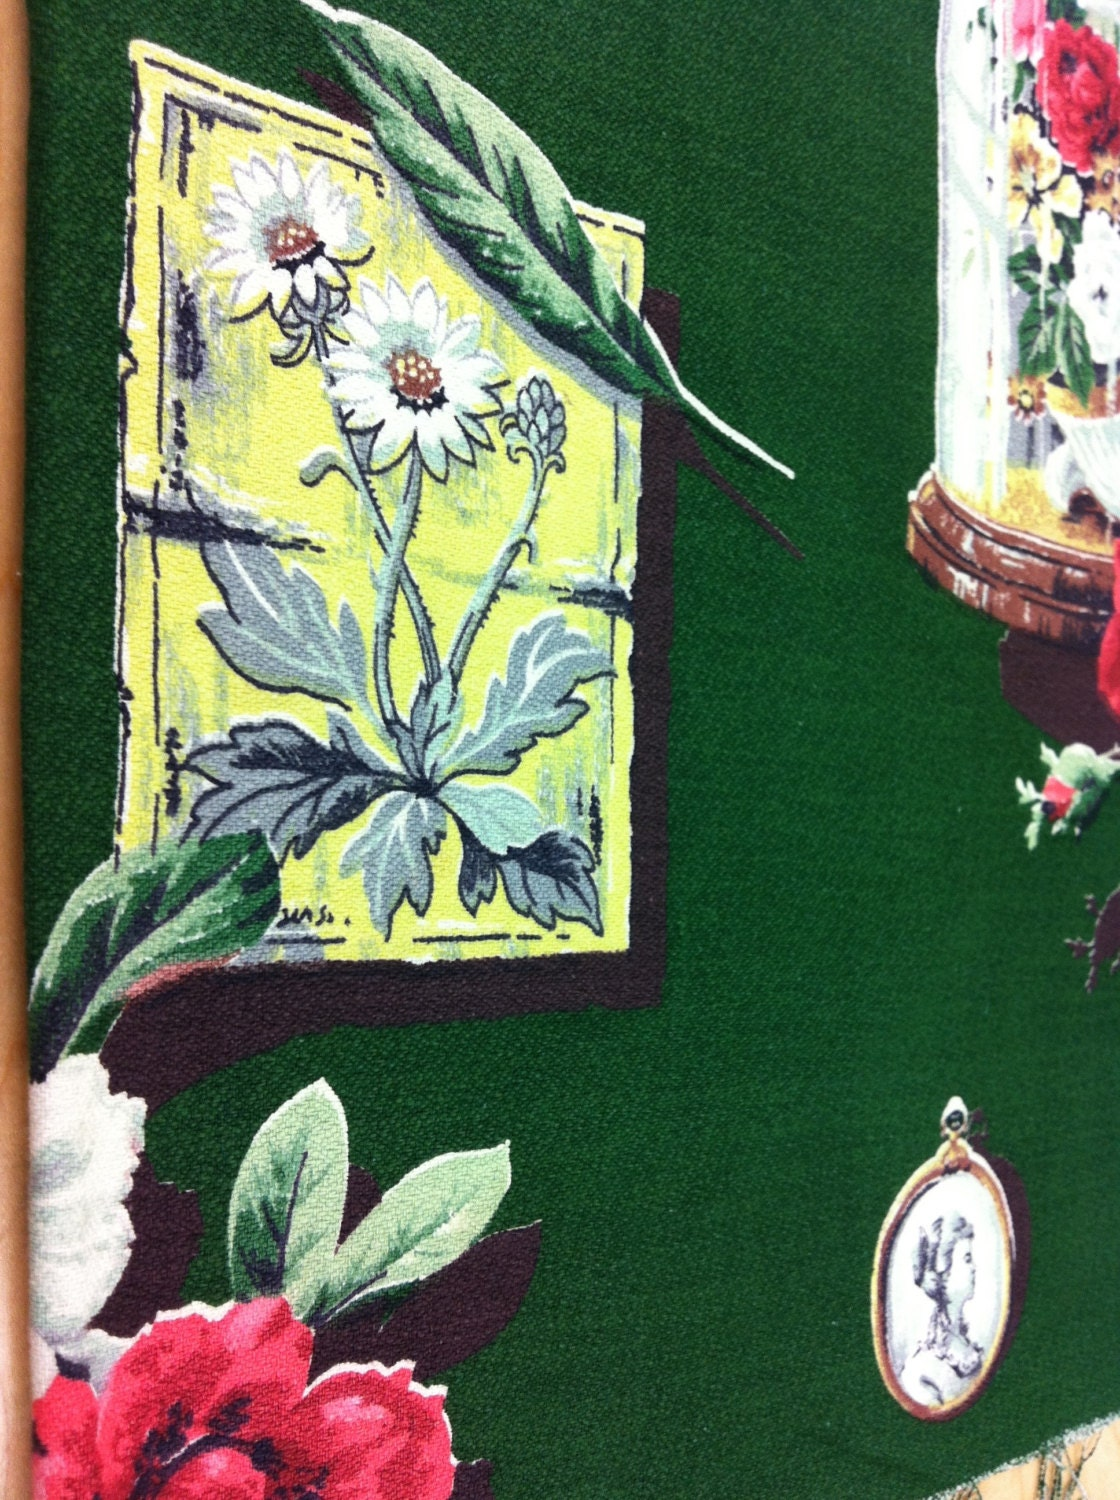 """40s A Vintage Tower Vat Print """"Design Family Treasures"""" /All Cotton Barkcloth /Multi Colors on Evergreen Grnd"""